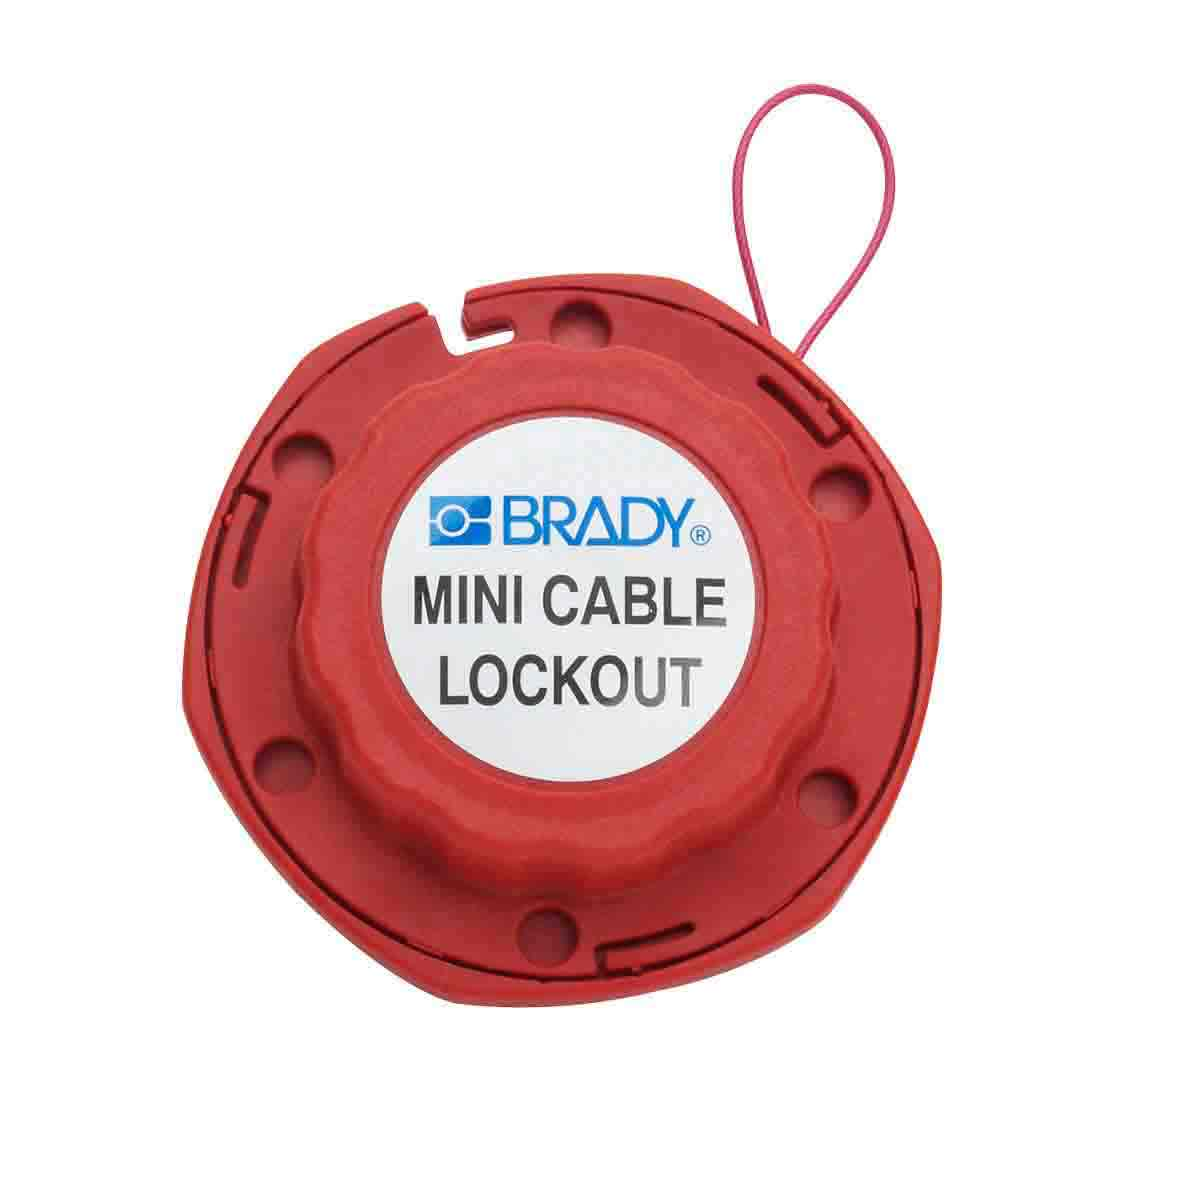 MINI CABLE LOCKOUT W/METAL CABLE